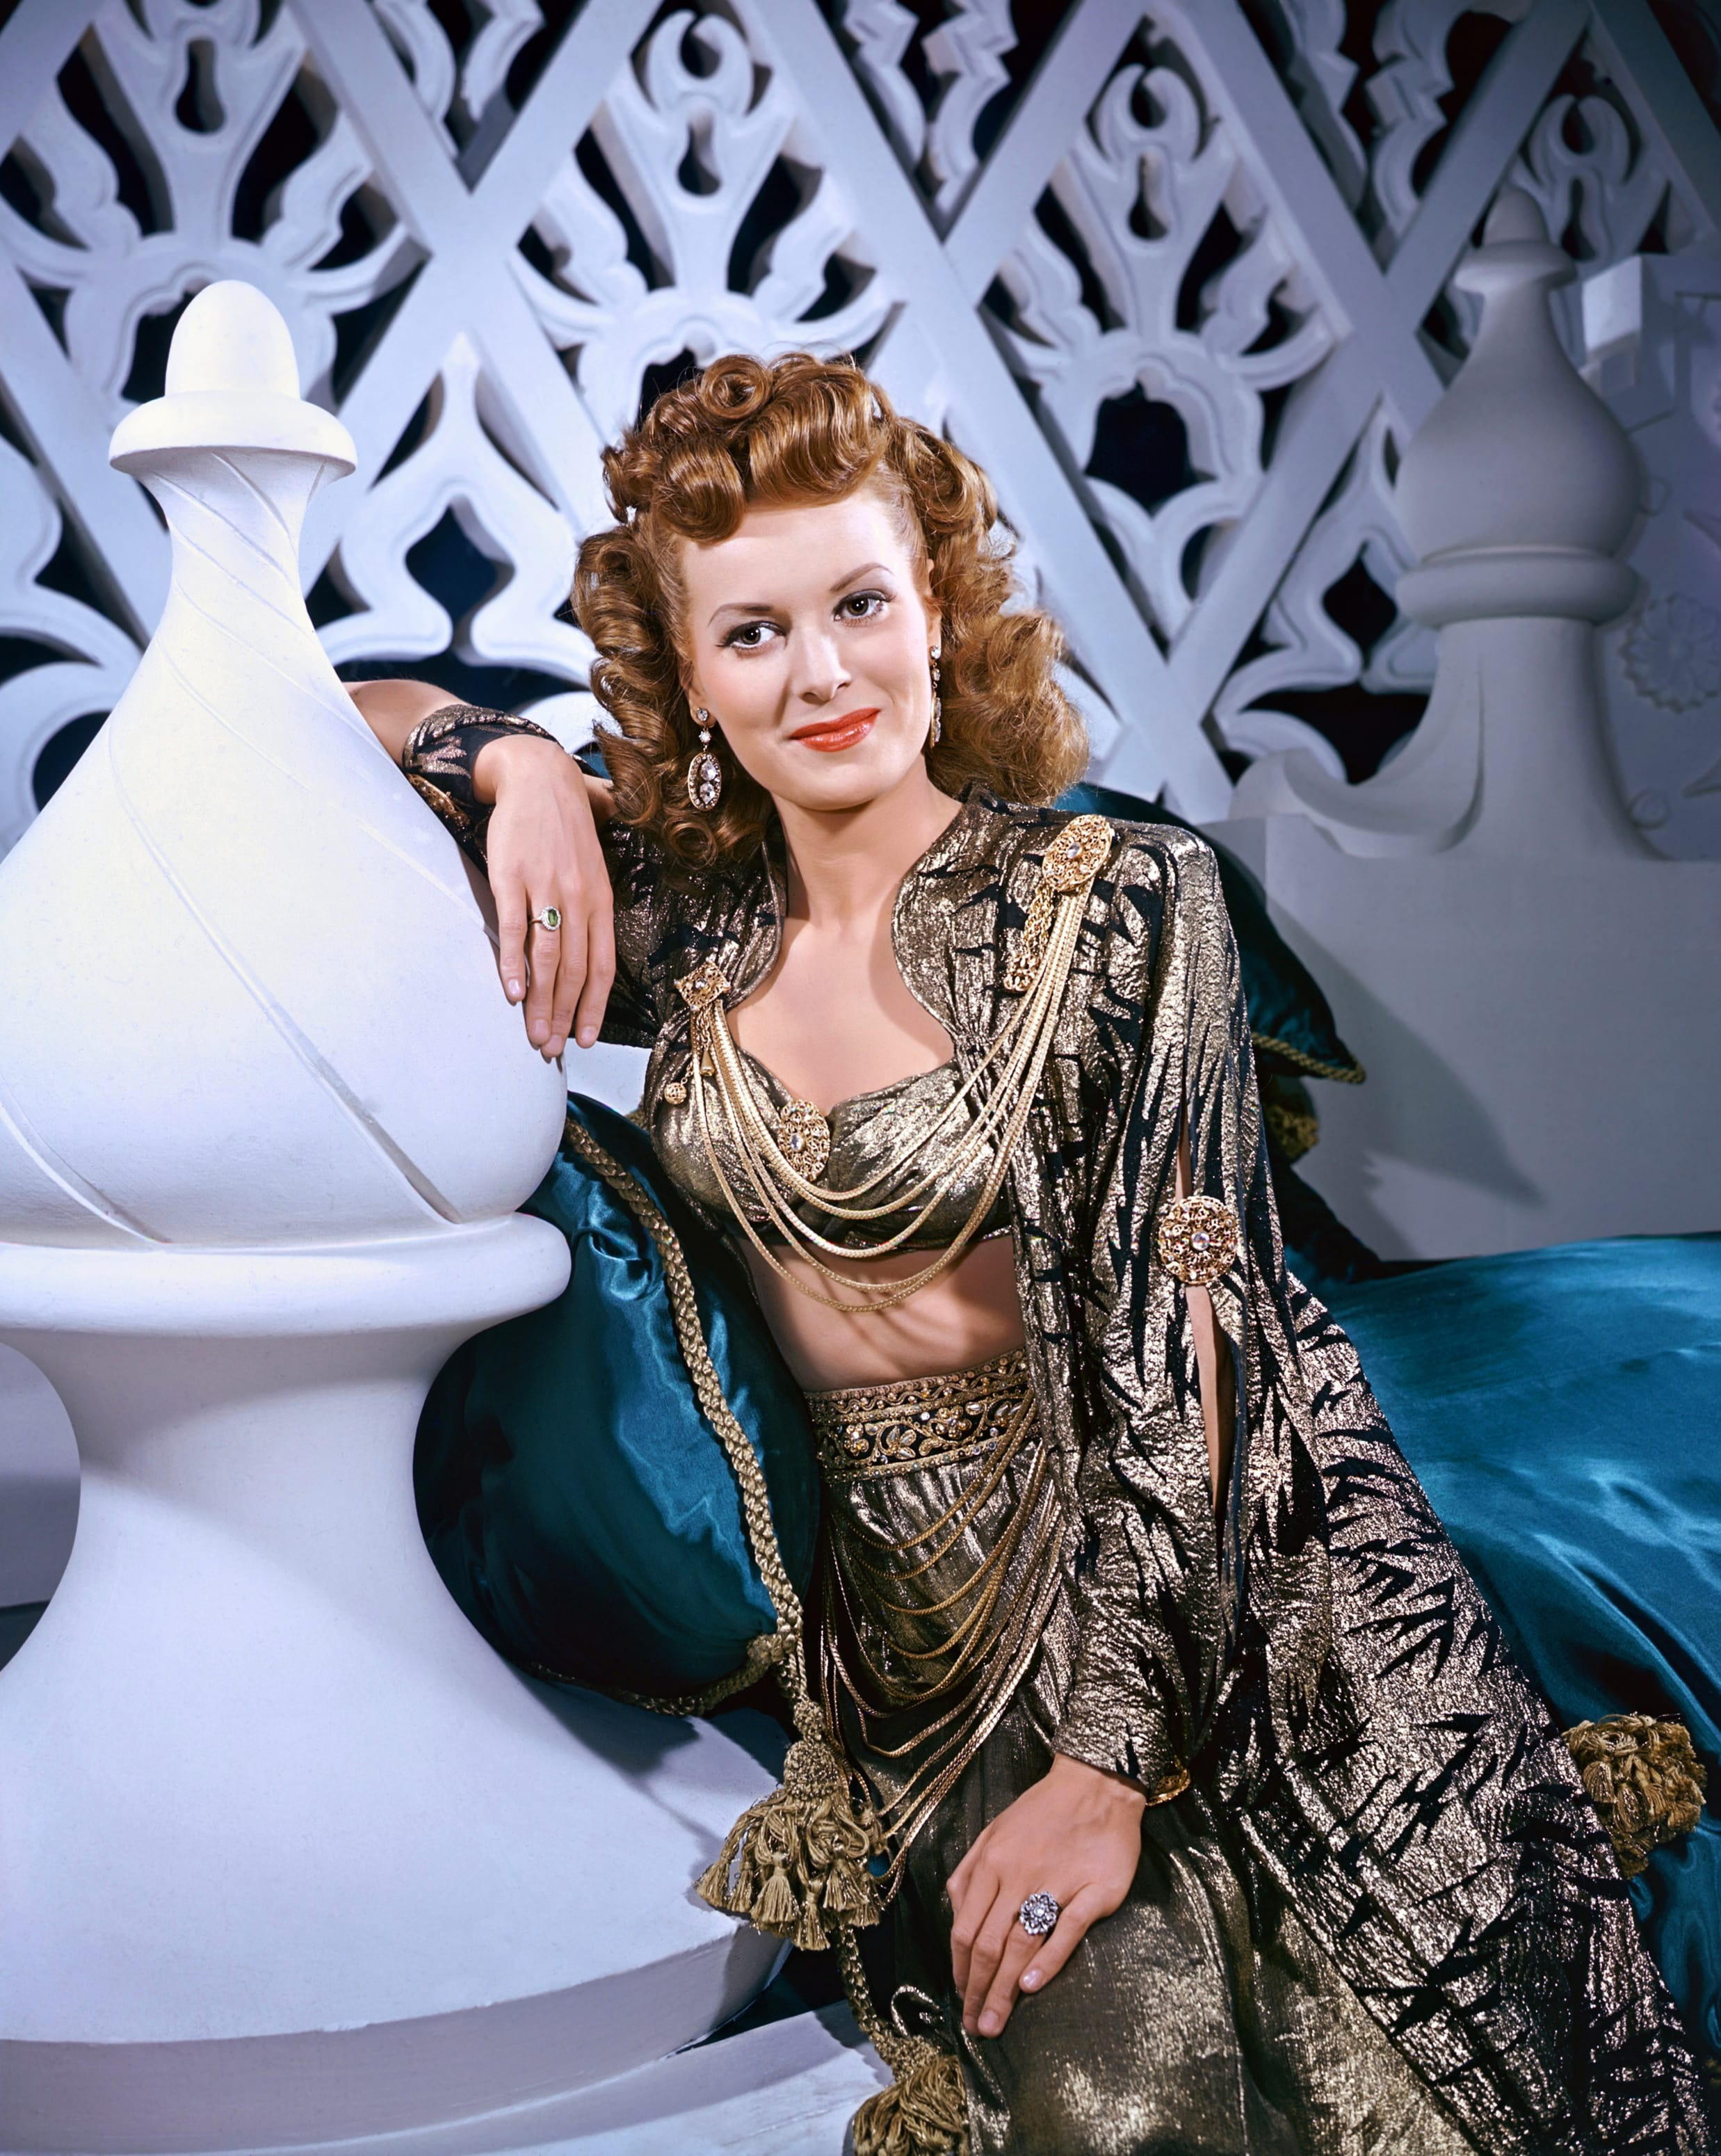 Maureen O'hara Wallpaper